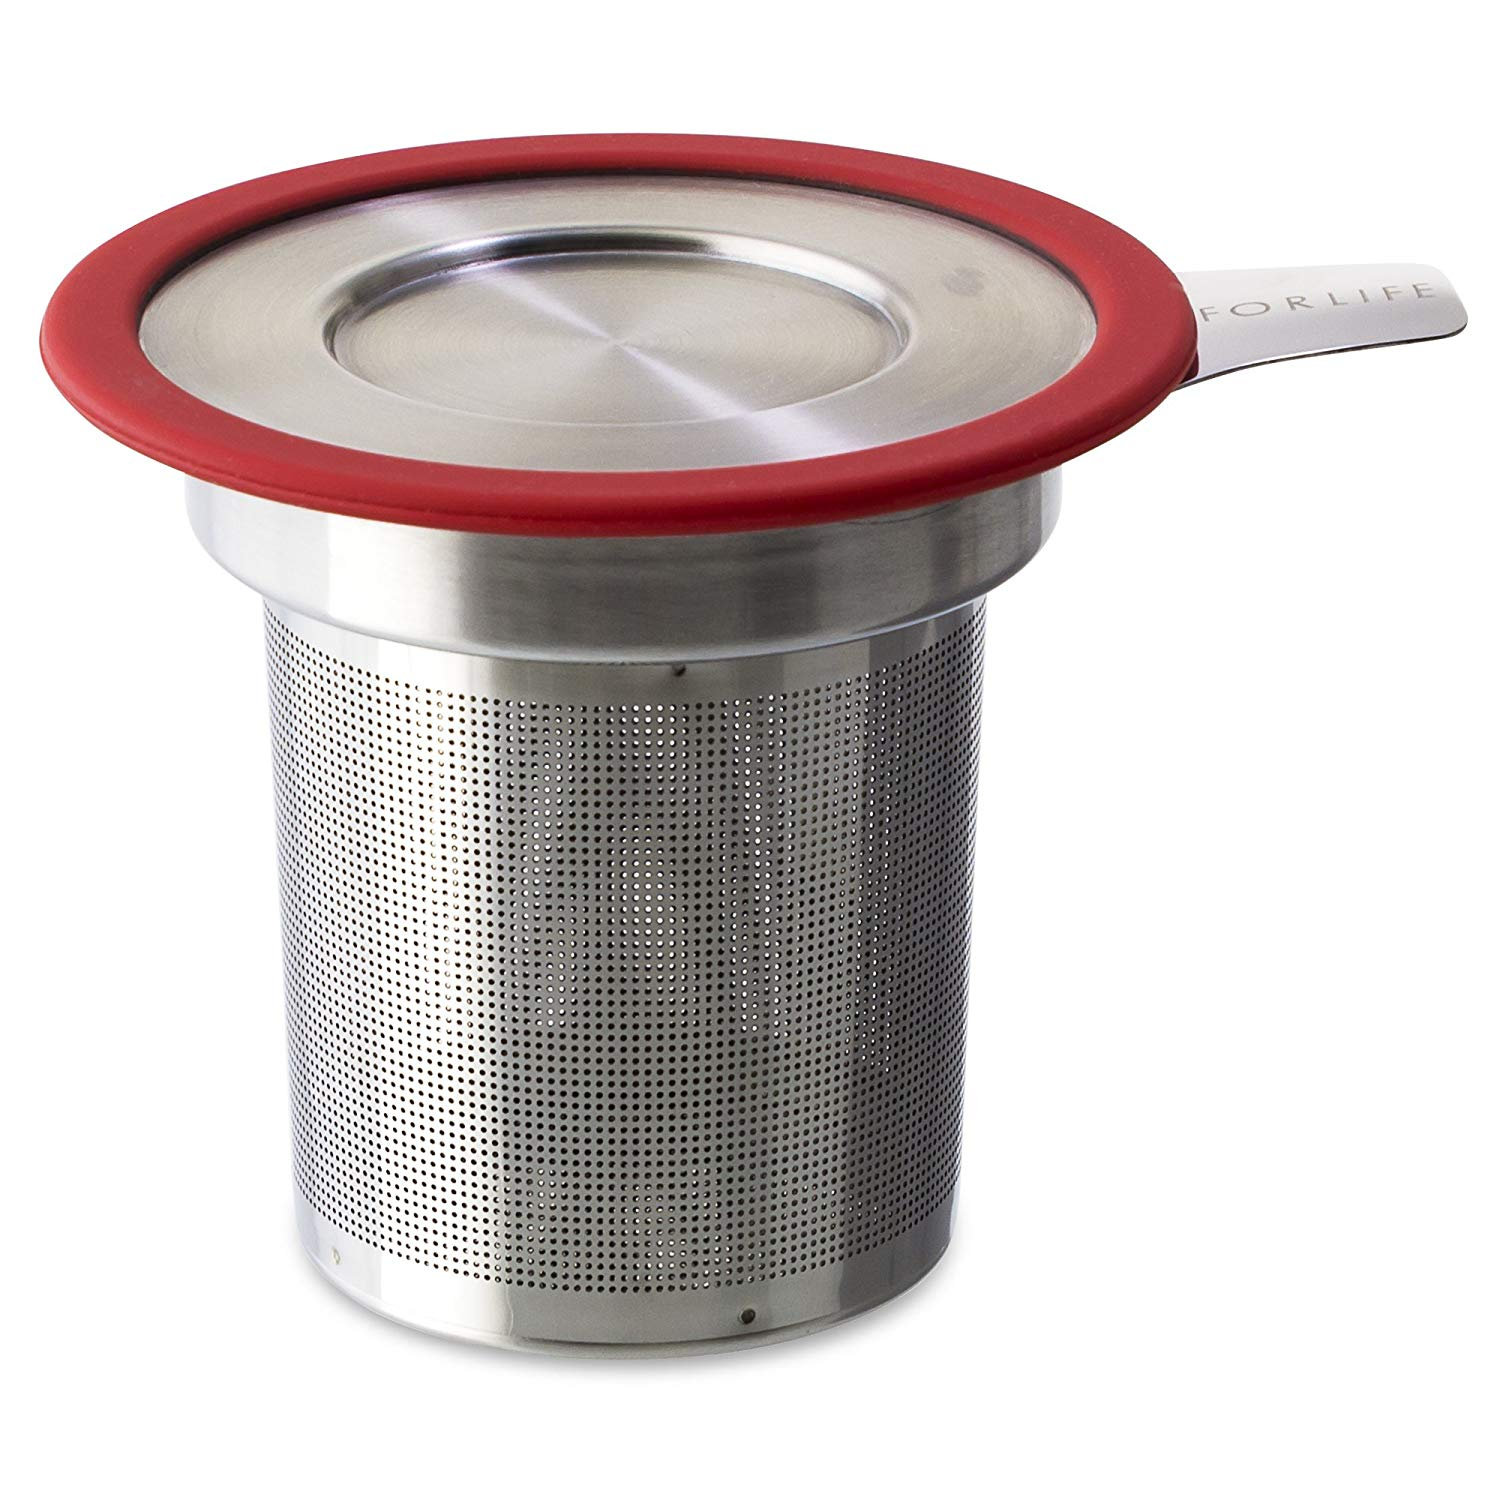 FORLIFE Brew-in-Mug Extra-Fine Tea Infuser with Lid, Red